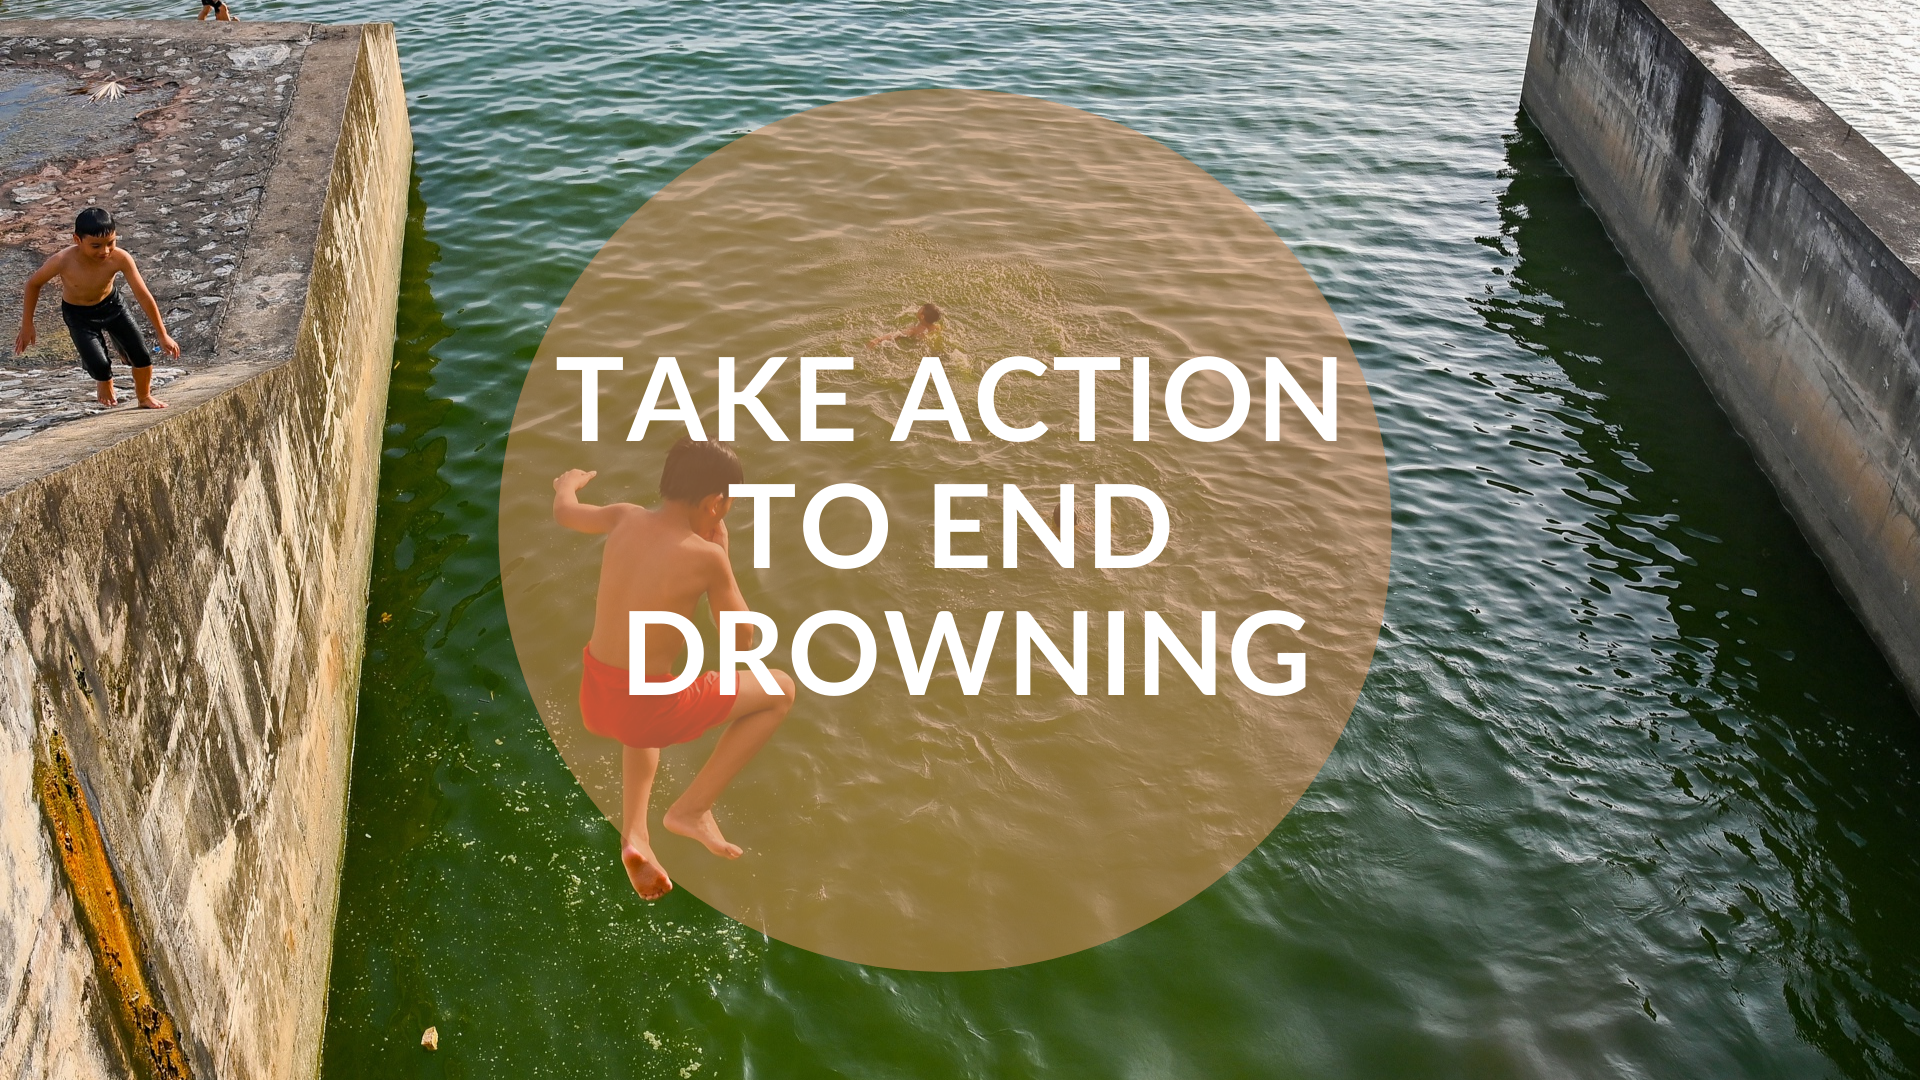 Vietnam Enhances Children's Water Safety To Tackle Child Drowning